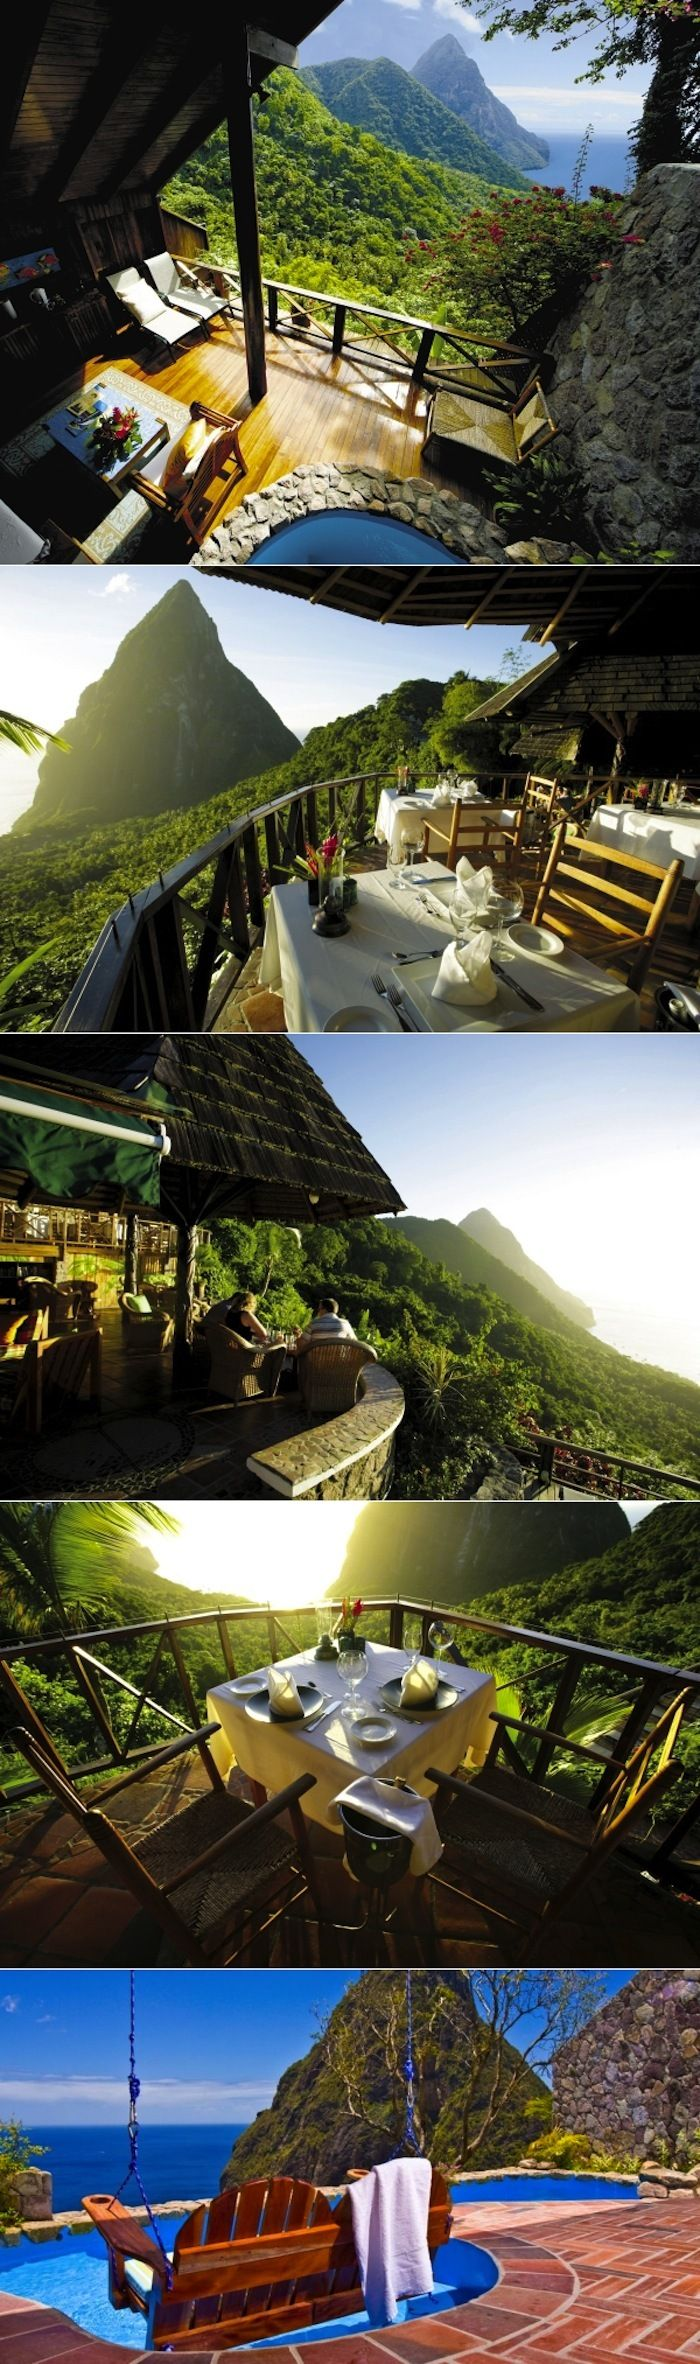 The Ladera in St. Lucia. An incredible resort with beautiful views of the The Pitons.